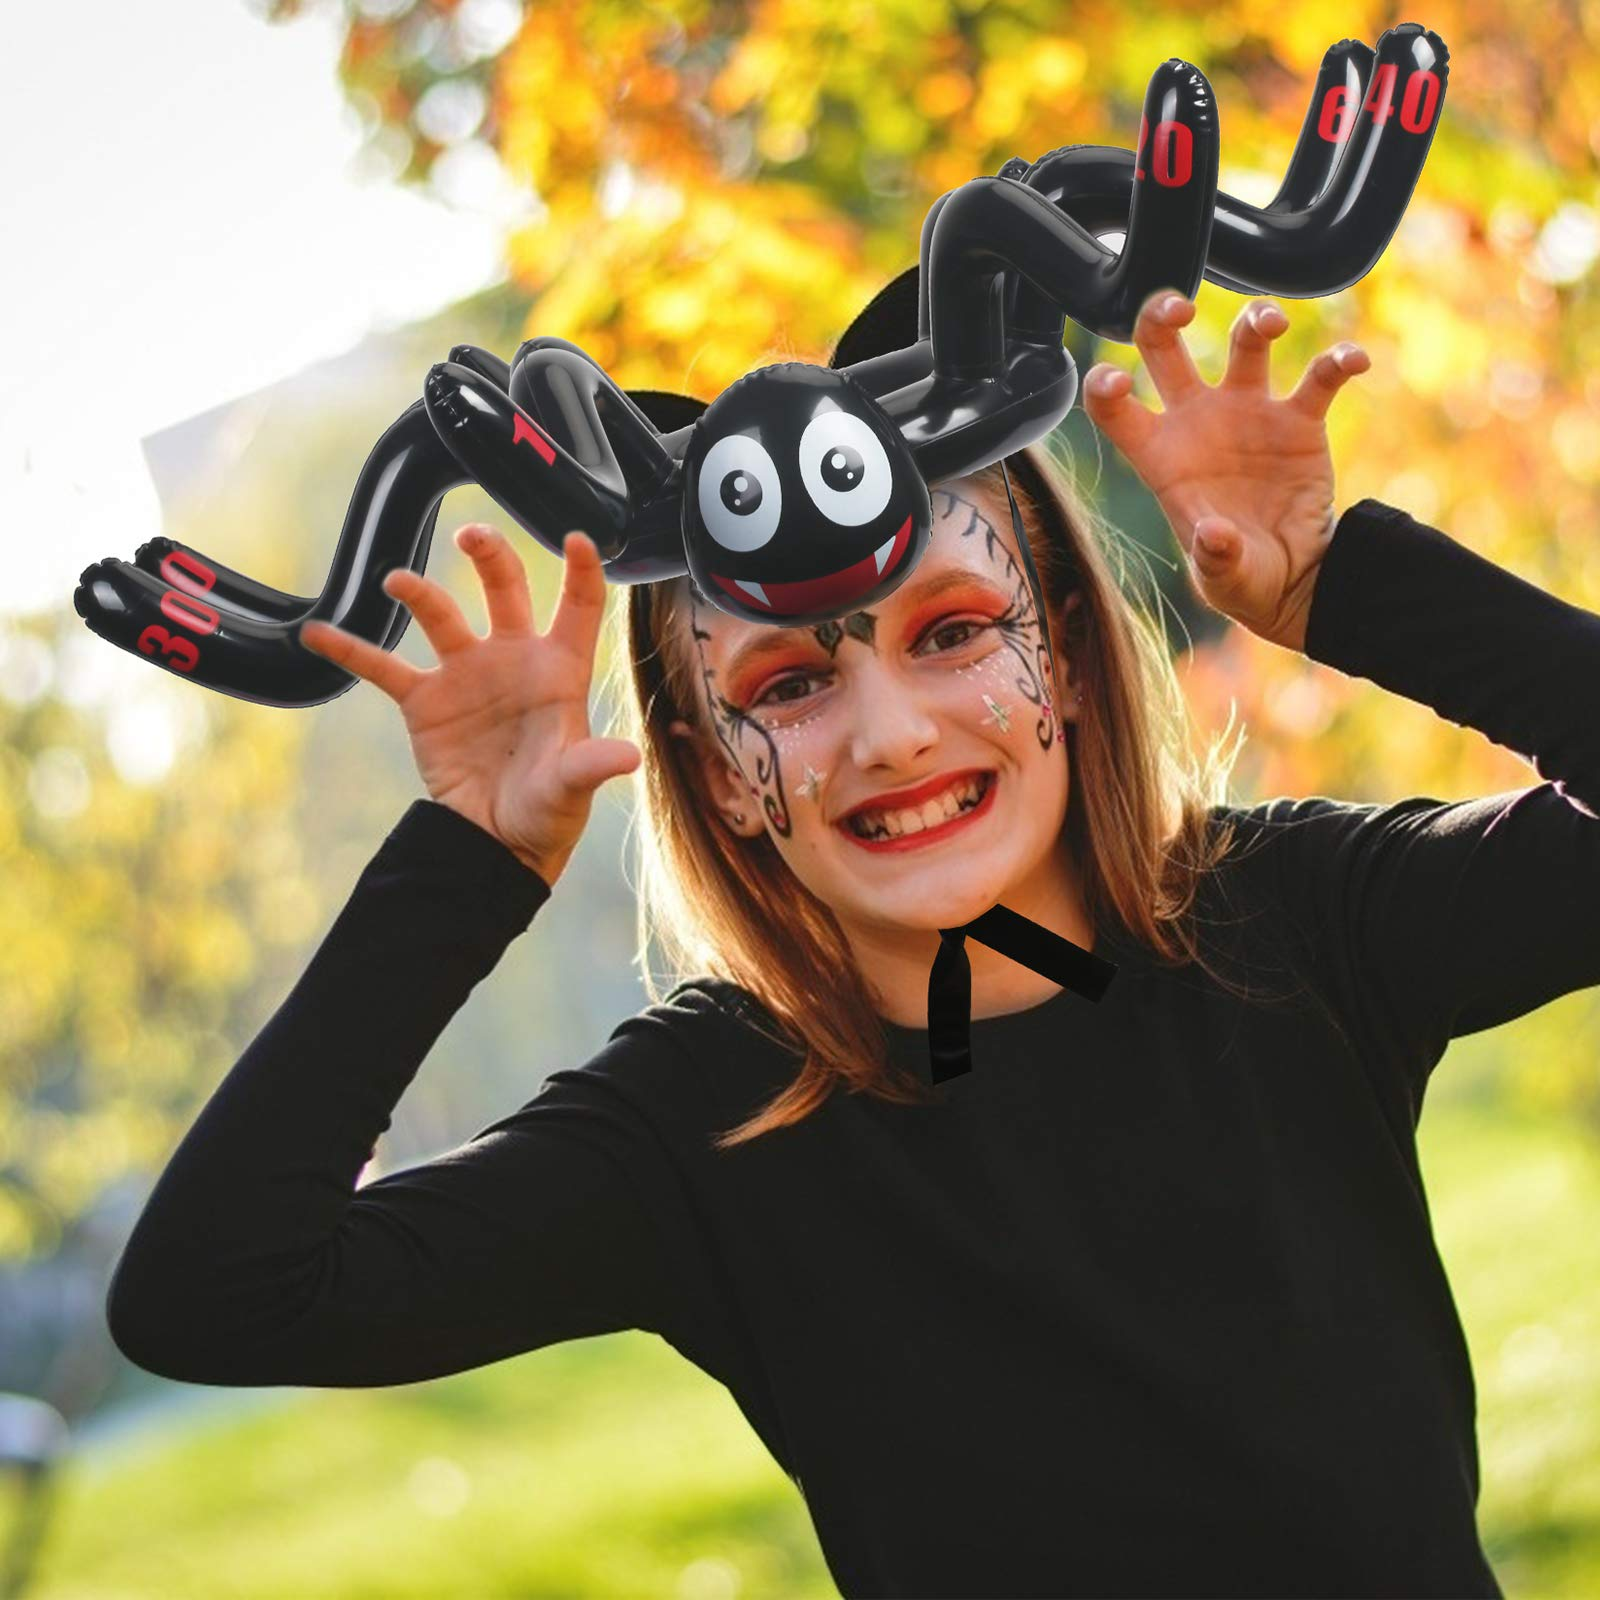 KATOOM Halloween Inflatable Ring 2 Pcs Toss Games Inflatable Spider Toy Hat with 12 pcs Rings for Halloween Party Supplies Kids Family Toys Indoor and Outdoor Games